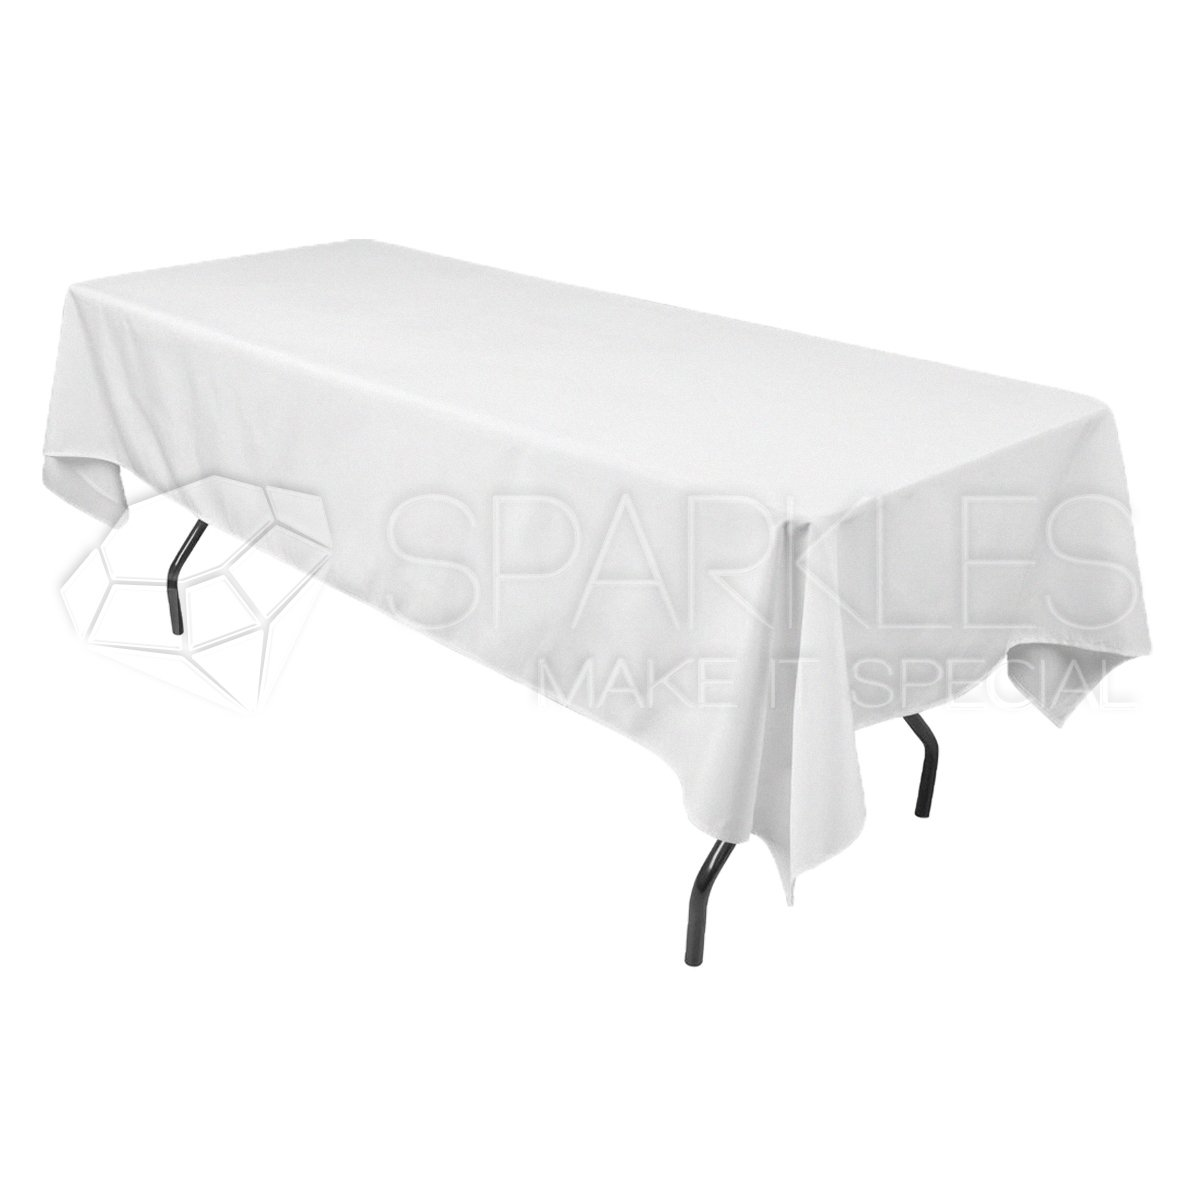 Sparkles Make It Special 10-pcs 60'' x 126'' Inch Rectangular Polyester Cloth Fabric Linen Tablecloth - Wedding Reception Restaurant Banquet Party - Machine Washable - Choice of Color - White by Sparkles Make It Special